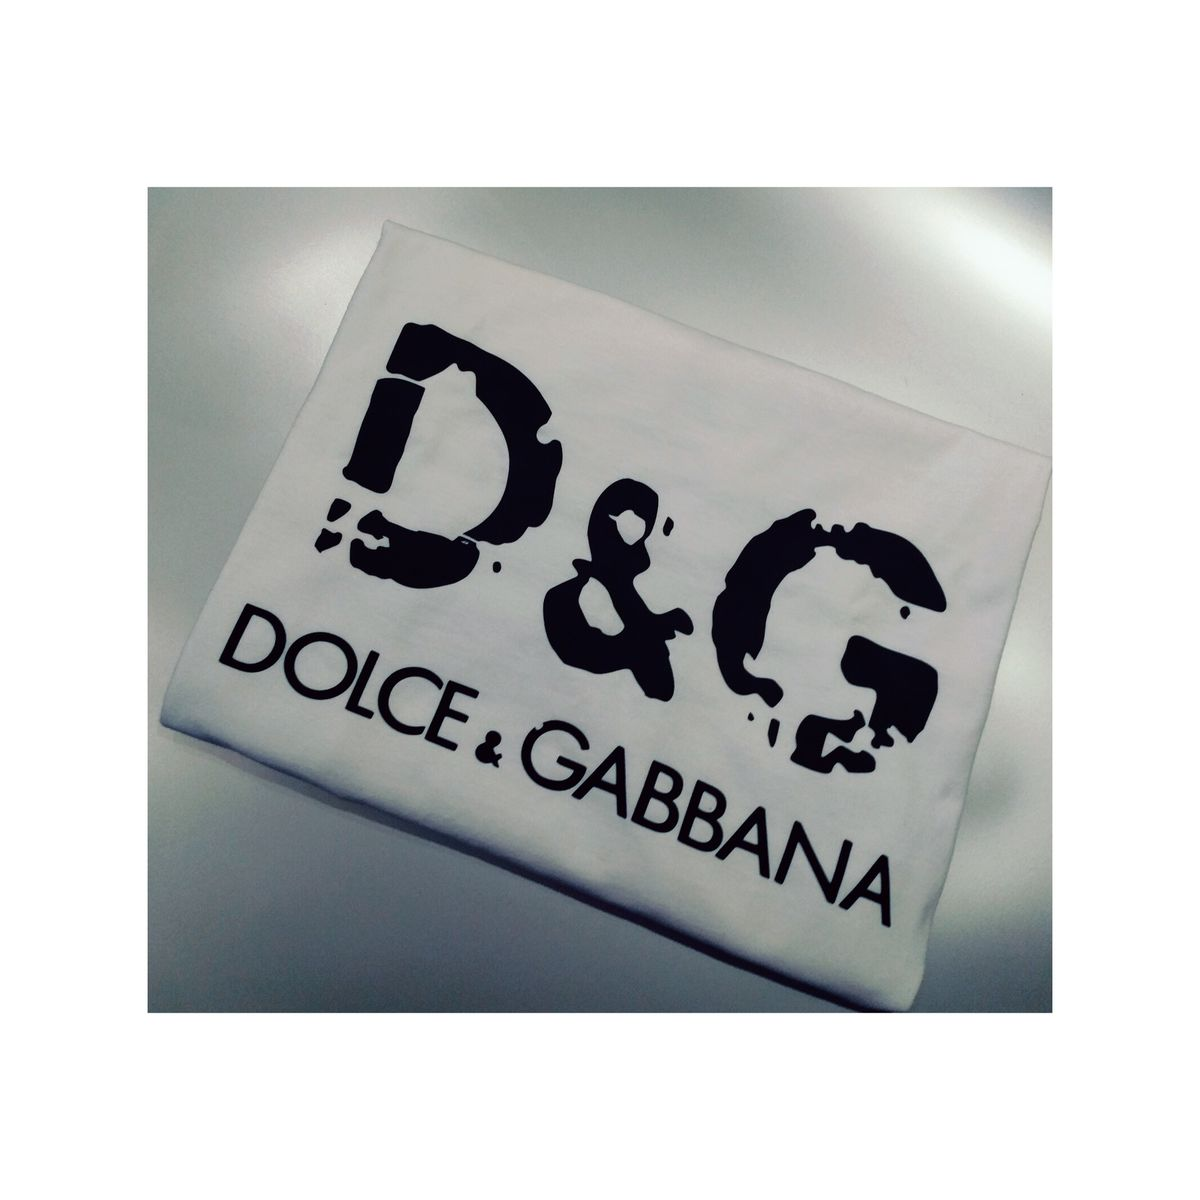 The D n G tee  - product image